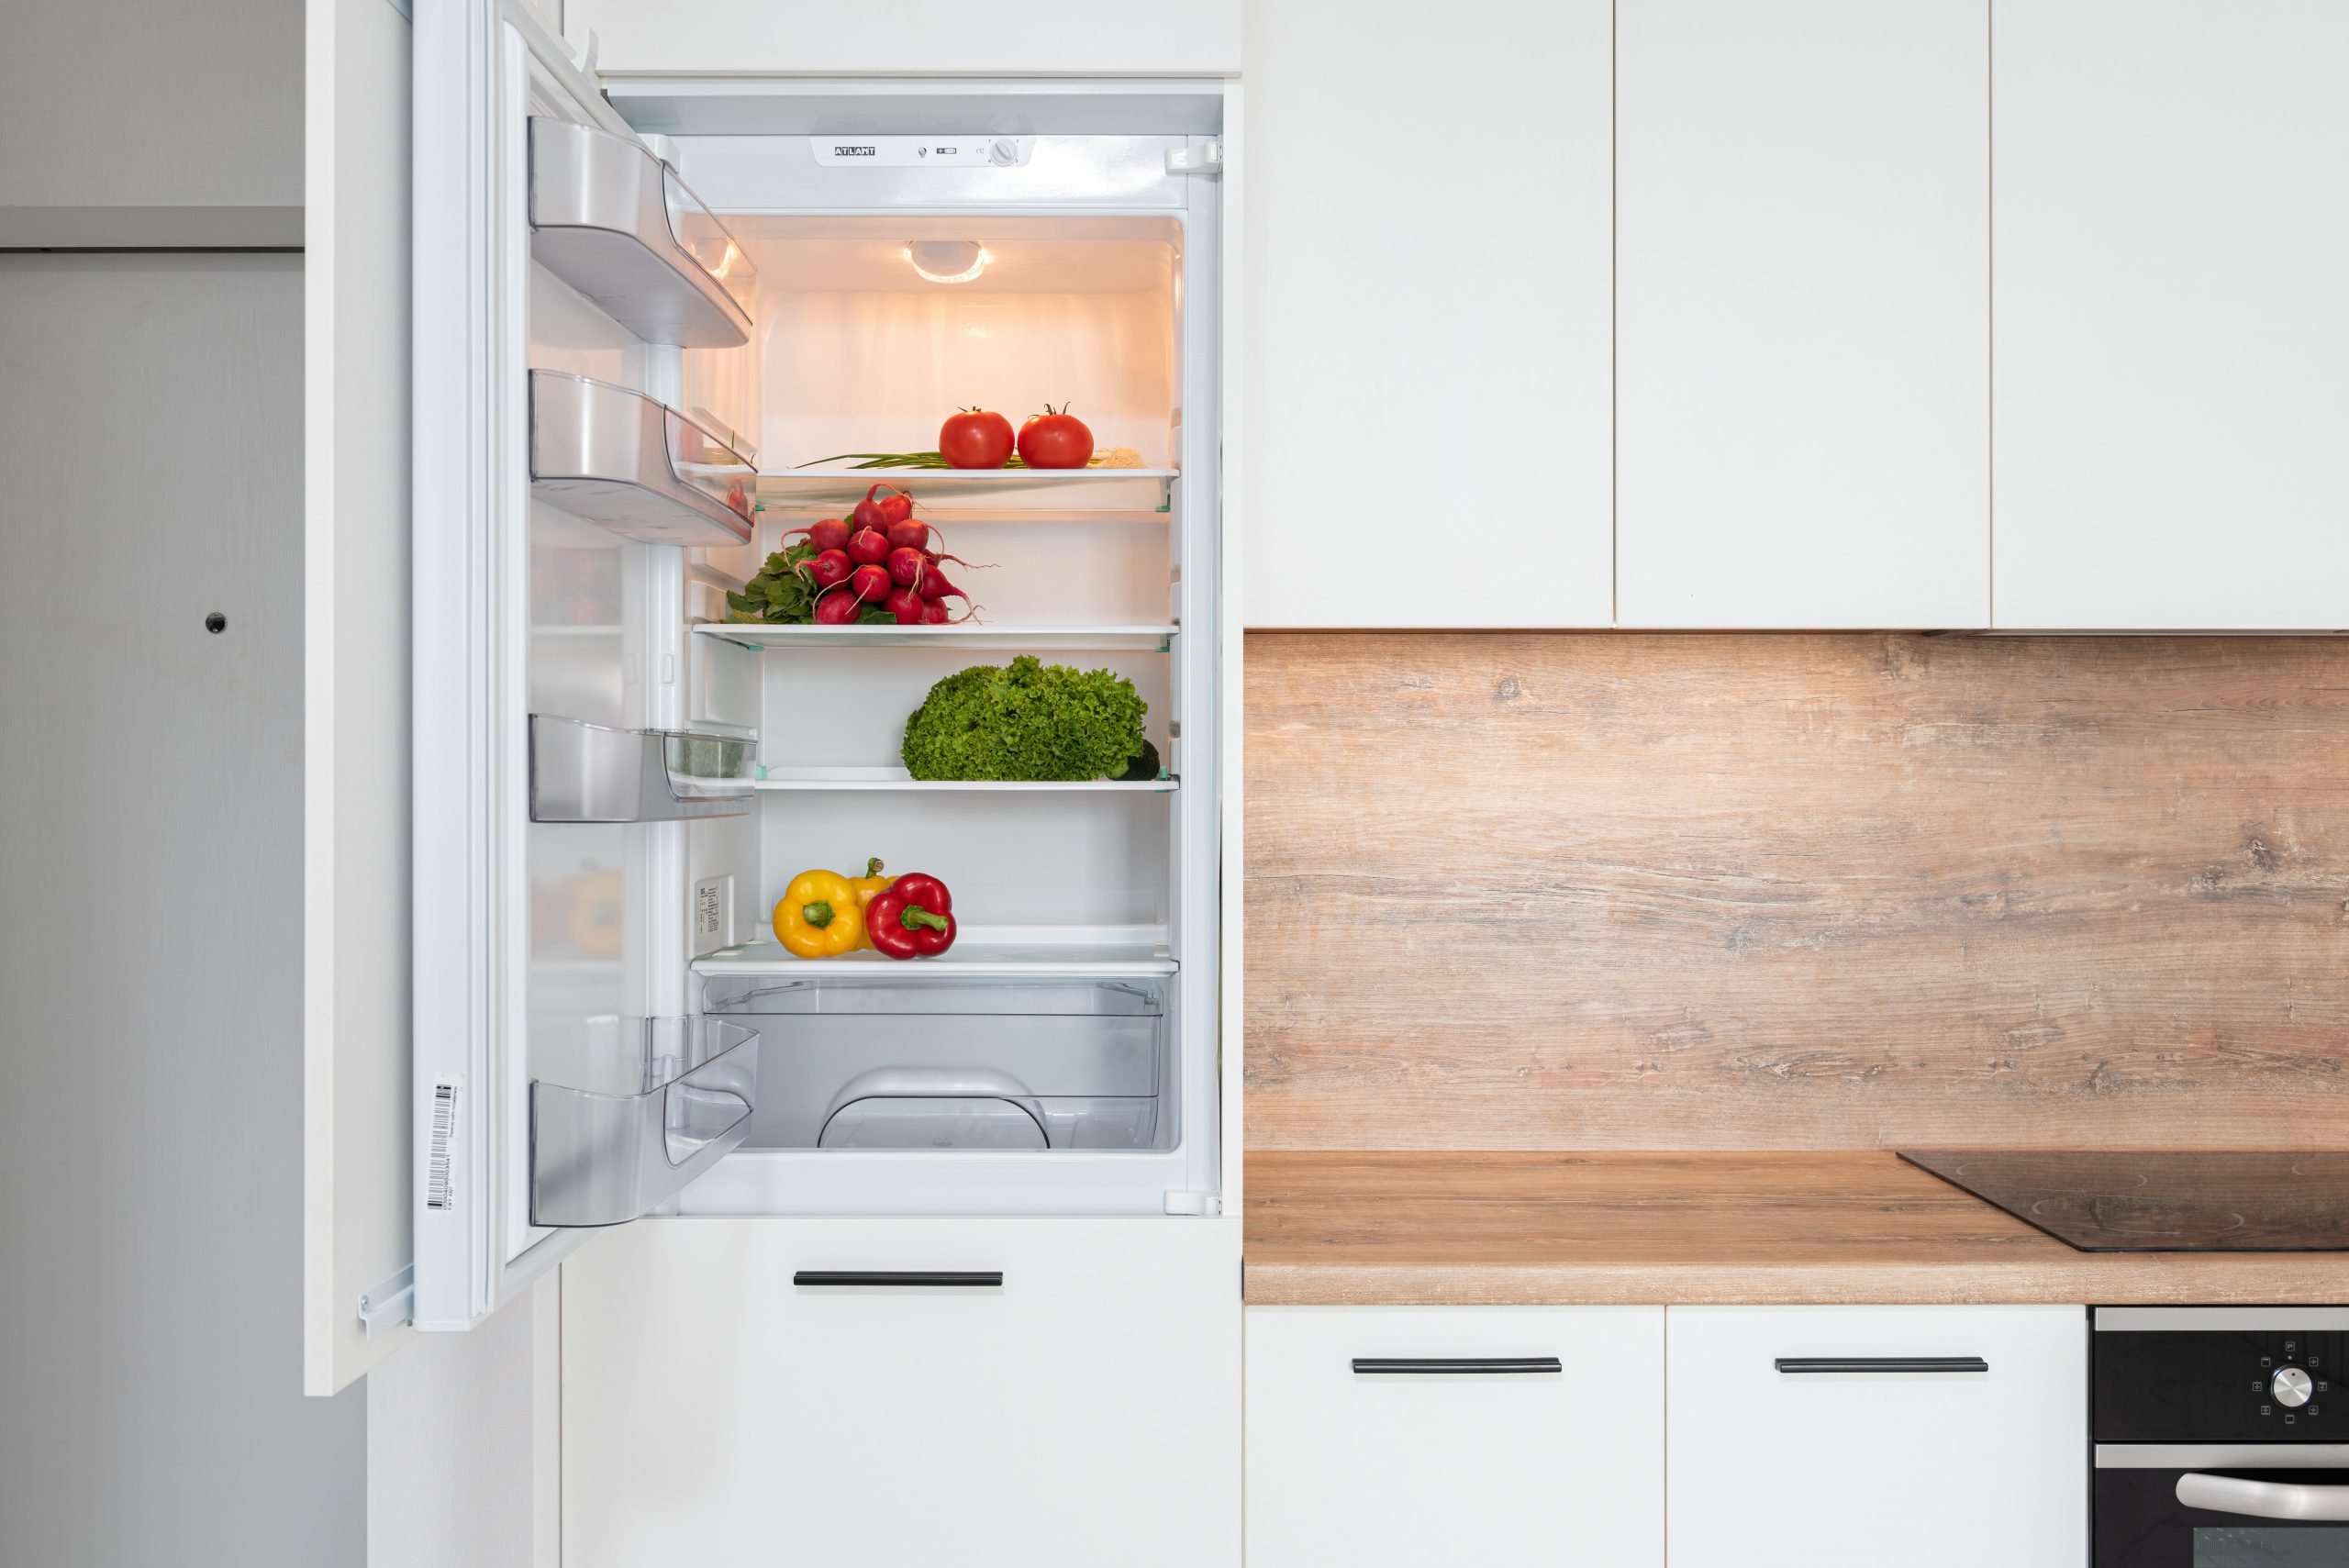 how to choose the refrigerator in order to get the money's worth for us